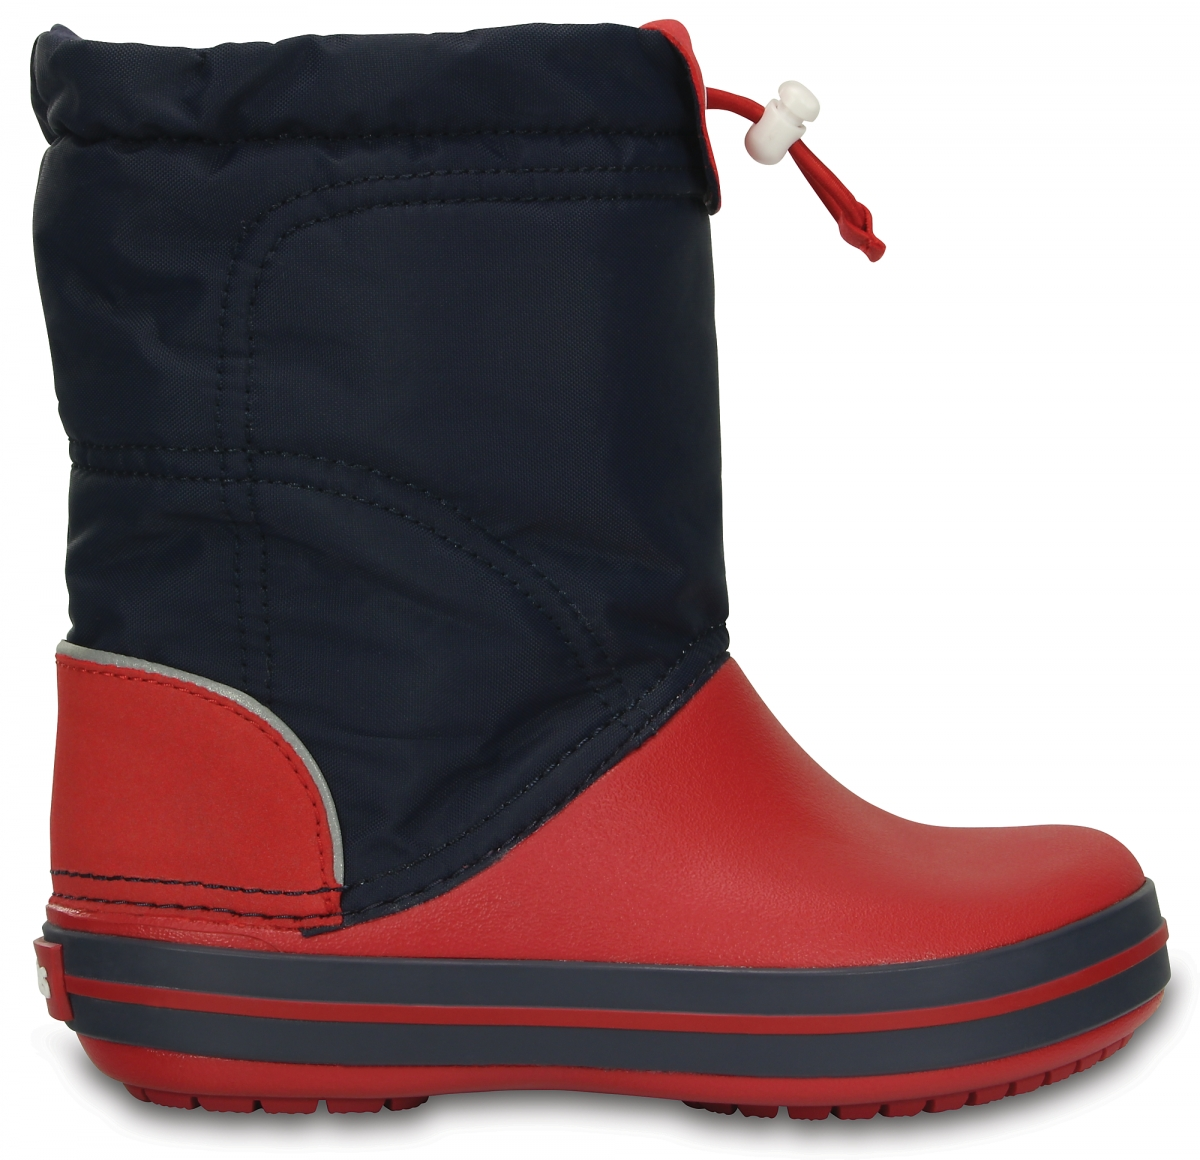 Crocs Crocband LodgePoint Boot Kids - Navy/Red, C12 (29-30)